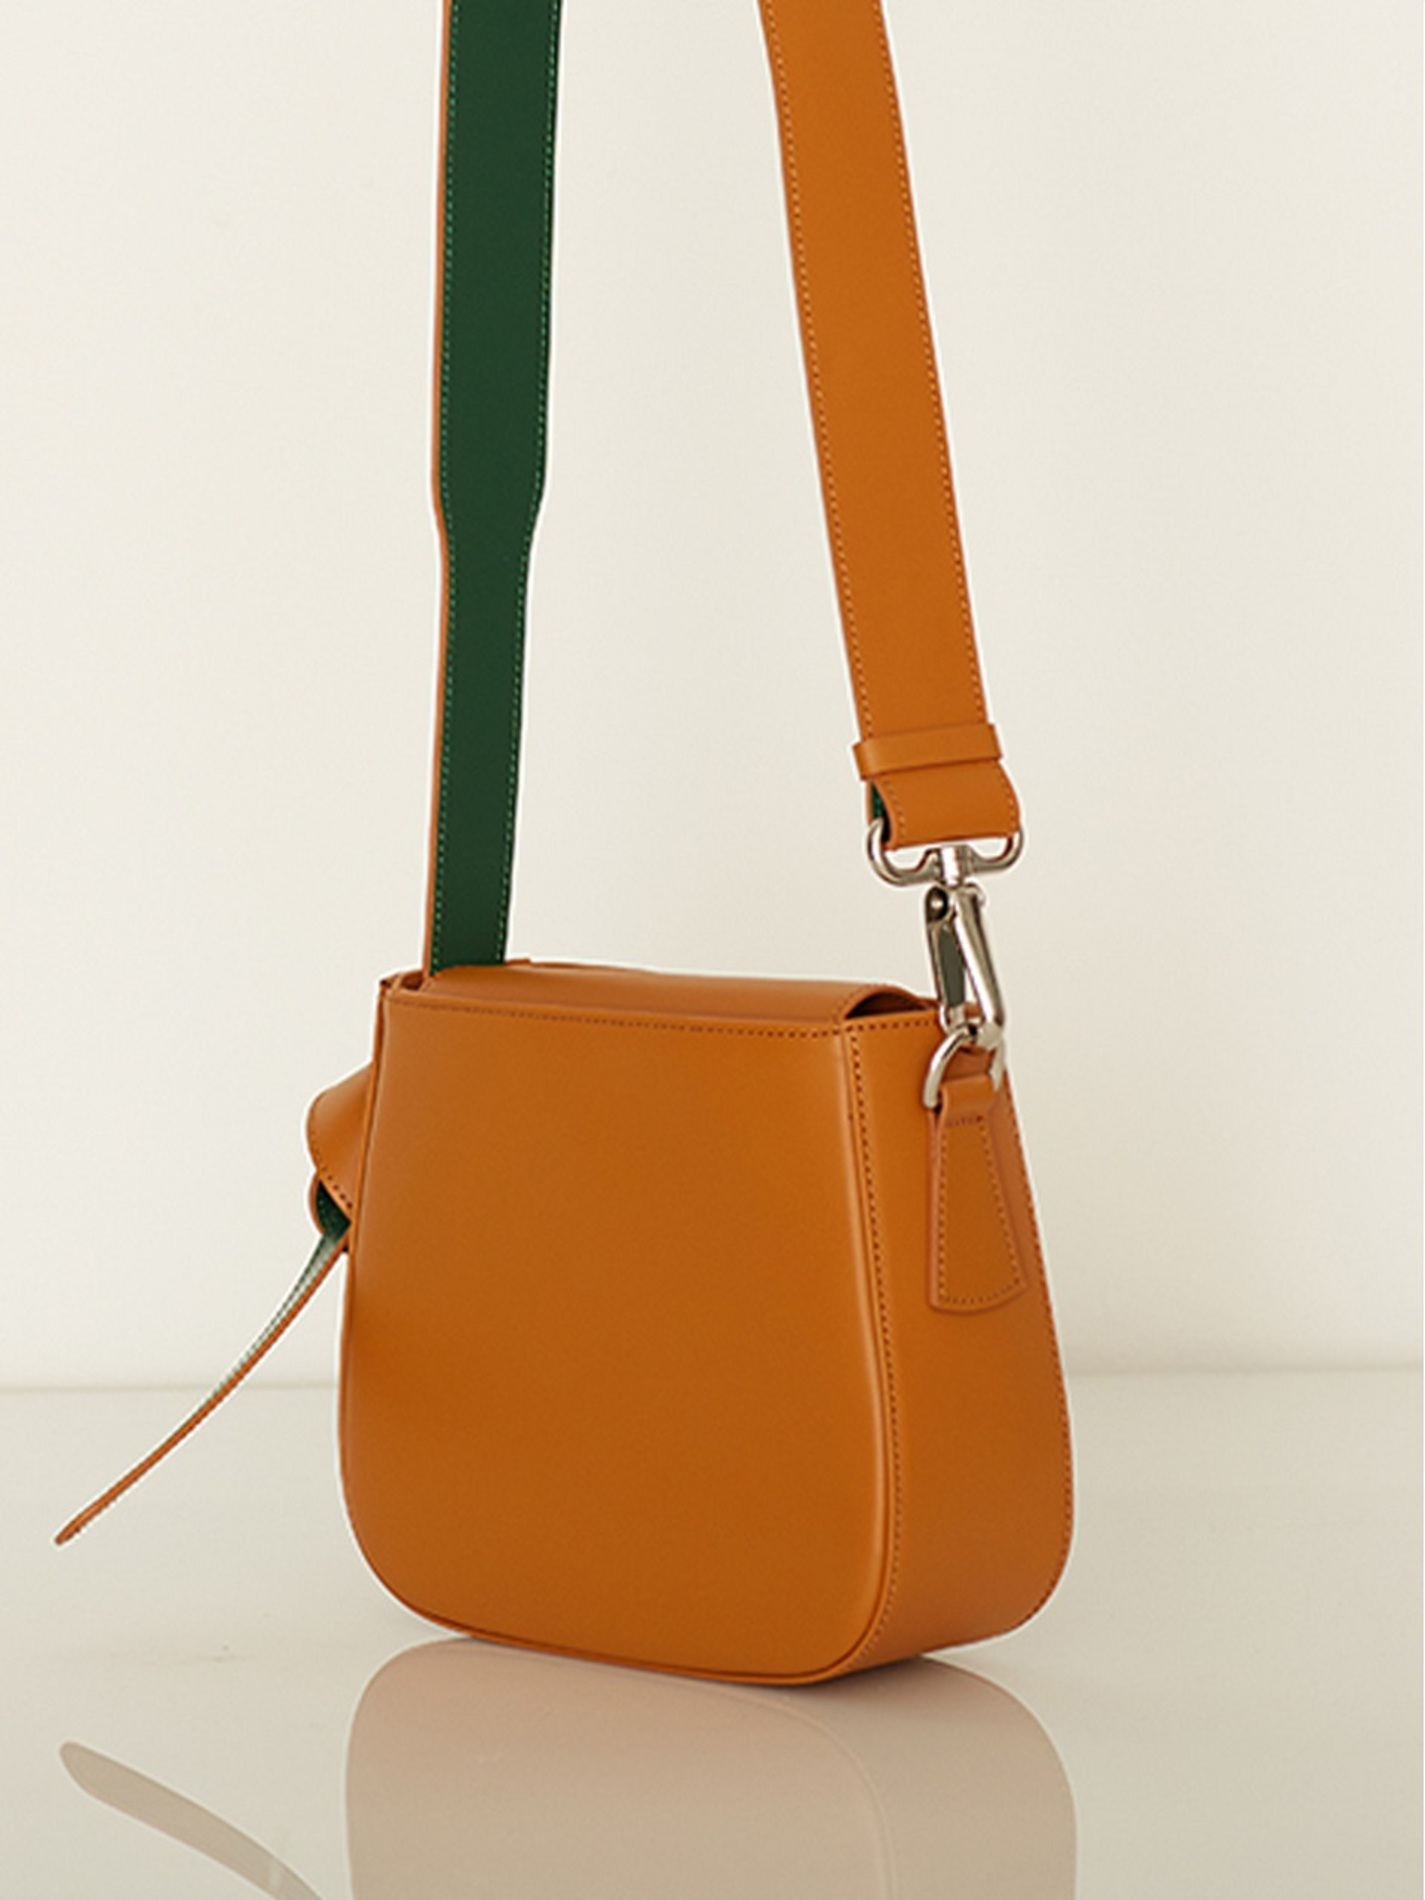 ATELIER PARK COLOR BLOCK BAG - MINI CAMEL